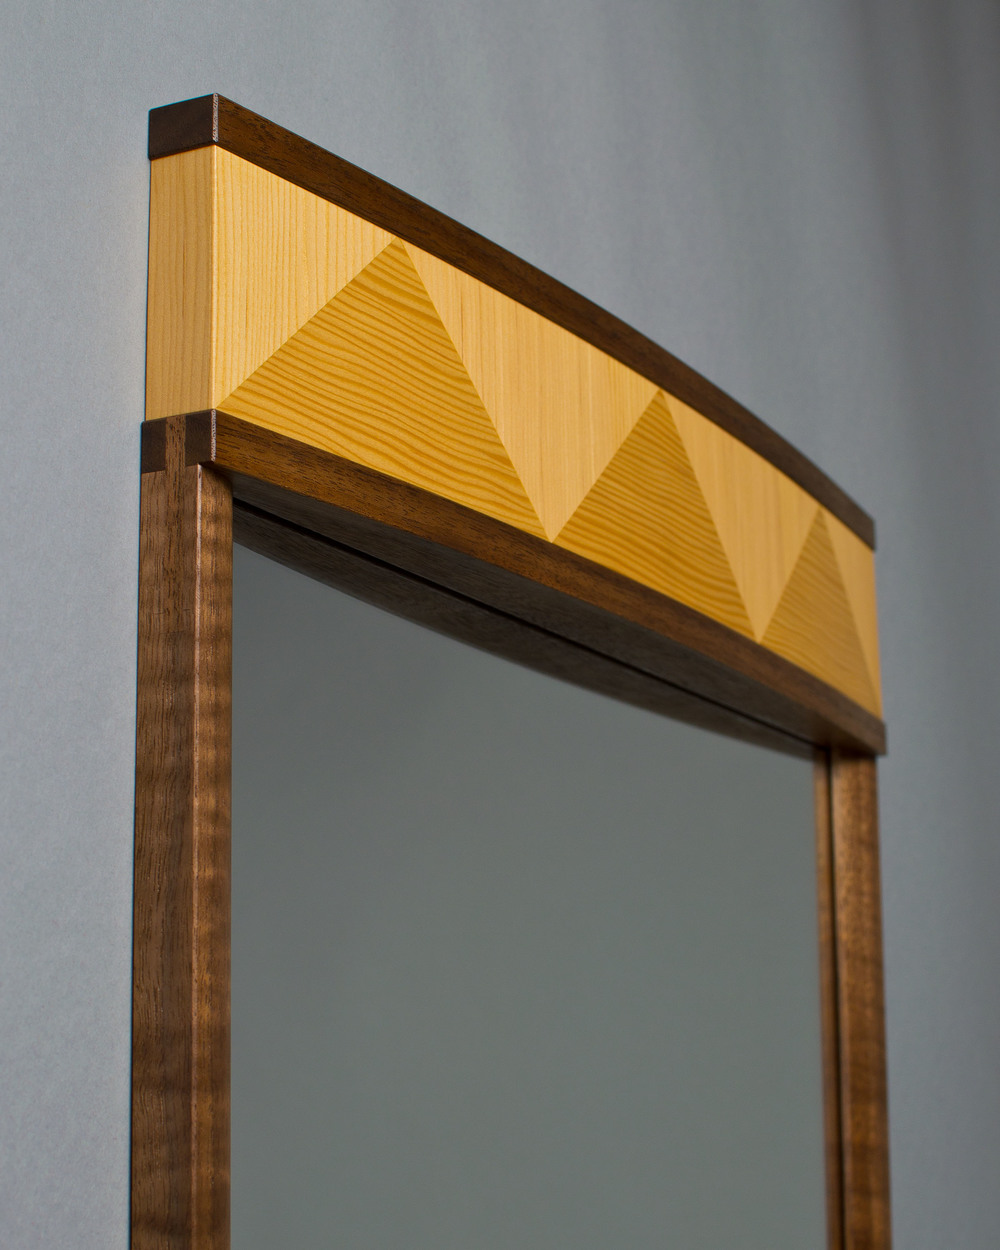 curved crown on top of mirror made of douglas-fir veneer